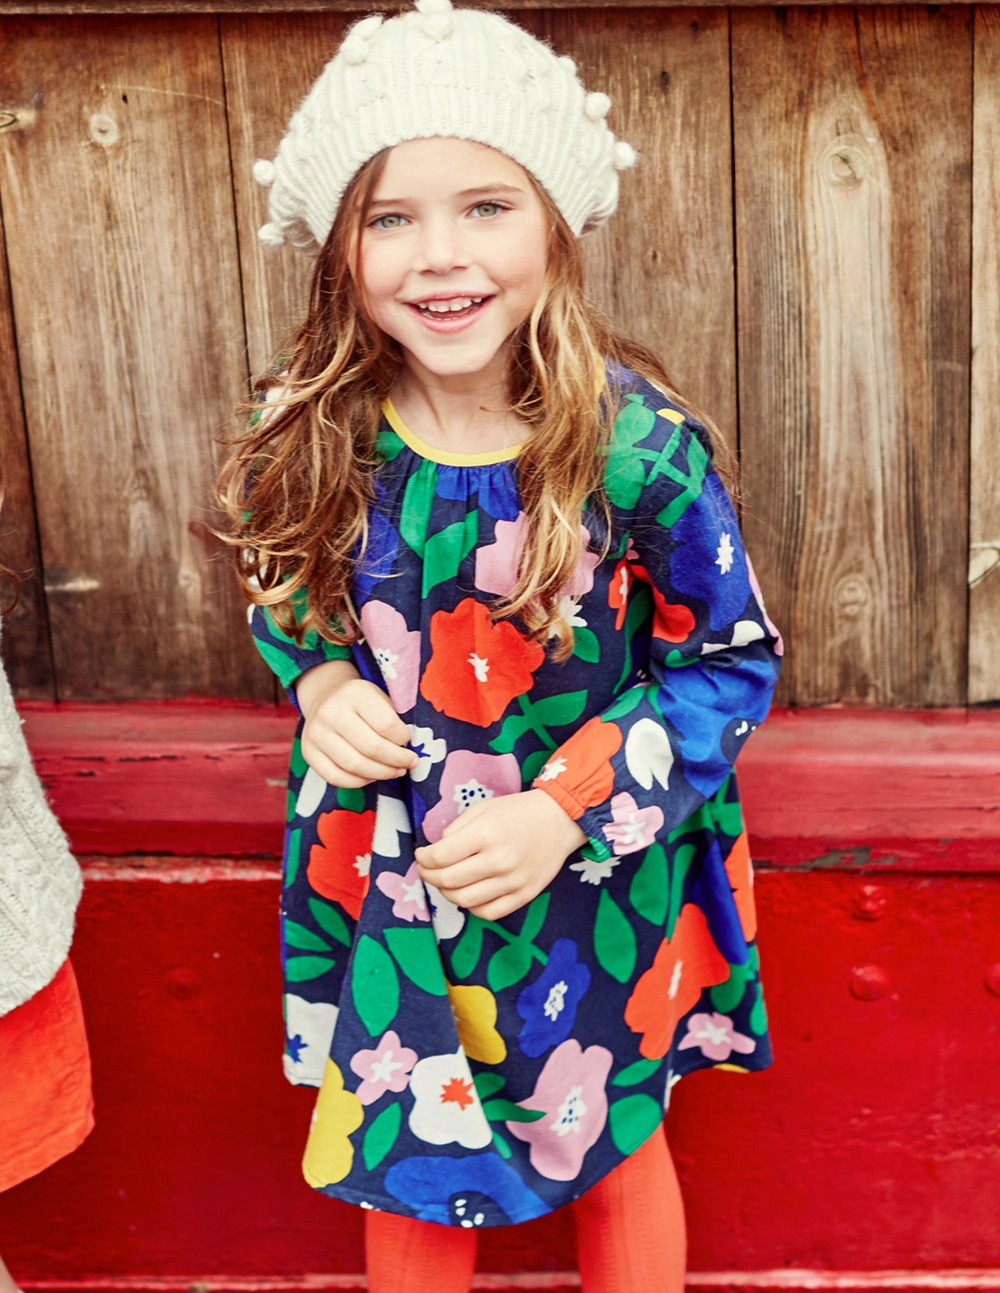 Bear Leader Girls Dress 2018 Brand Spring Girls Clothes European and American Style Flowers Printing Design Kids Dress For 2-7Y bear leader girls dress 2017 new spring